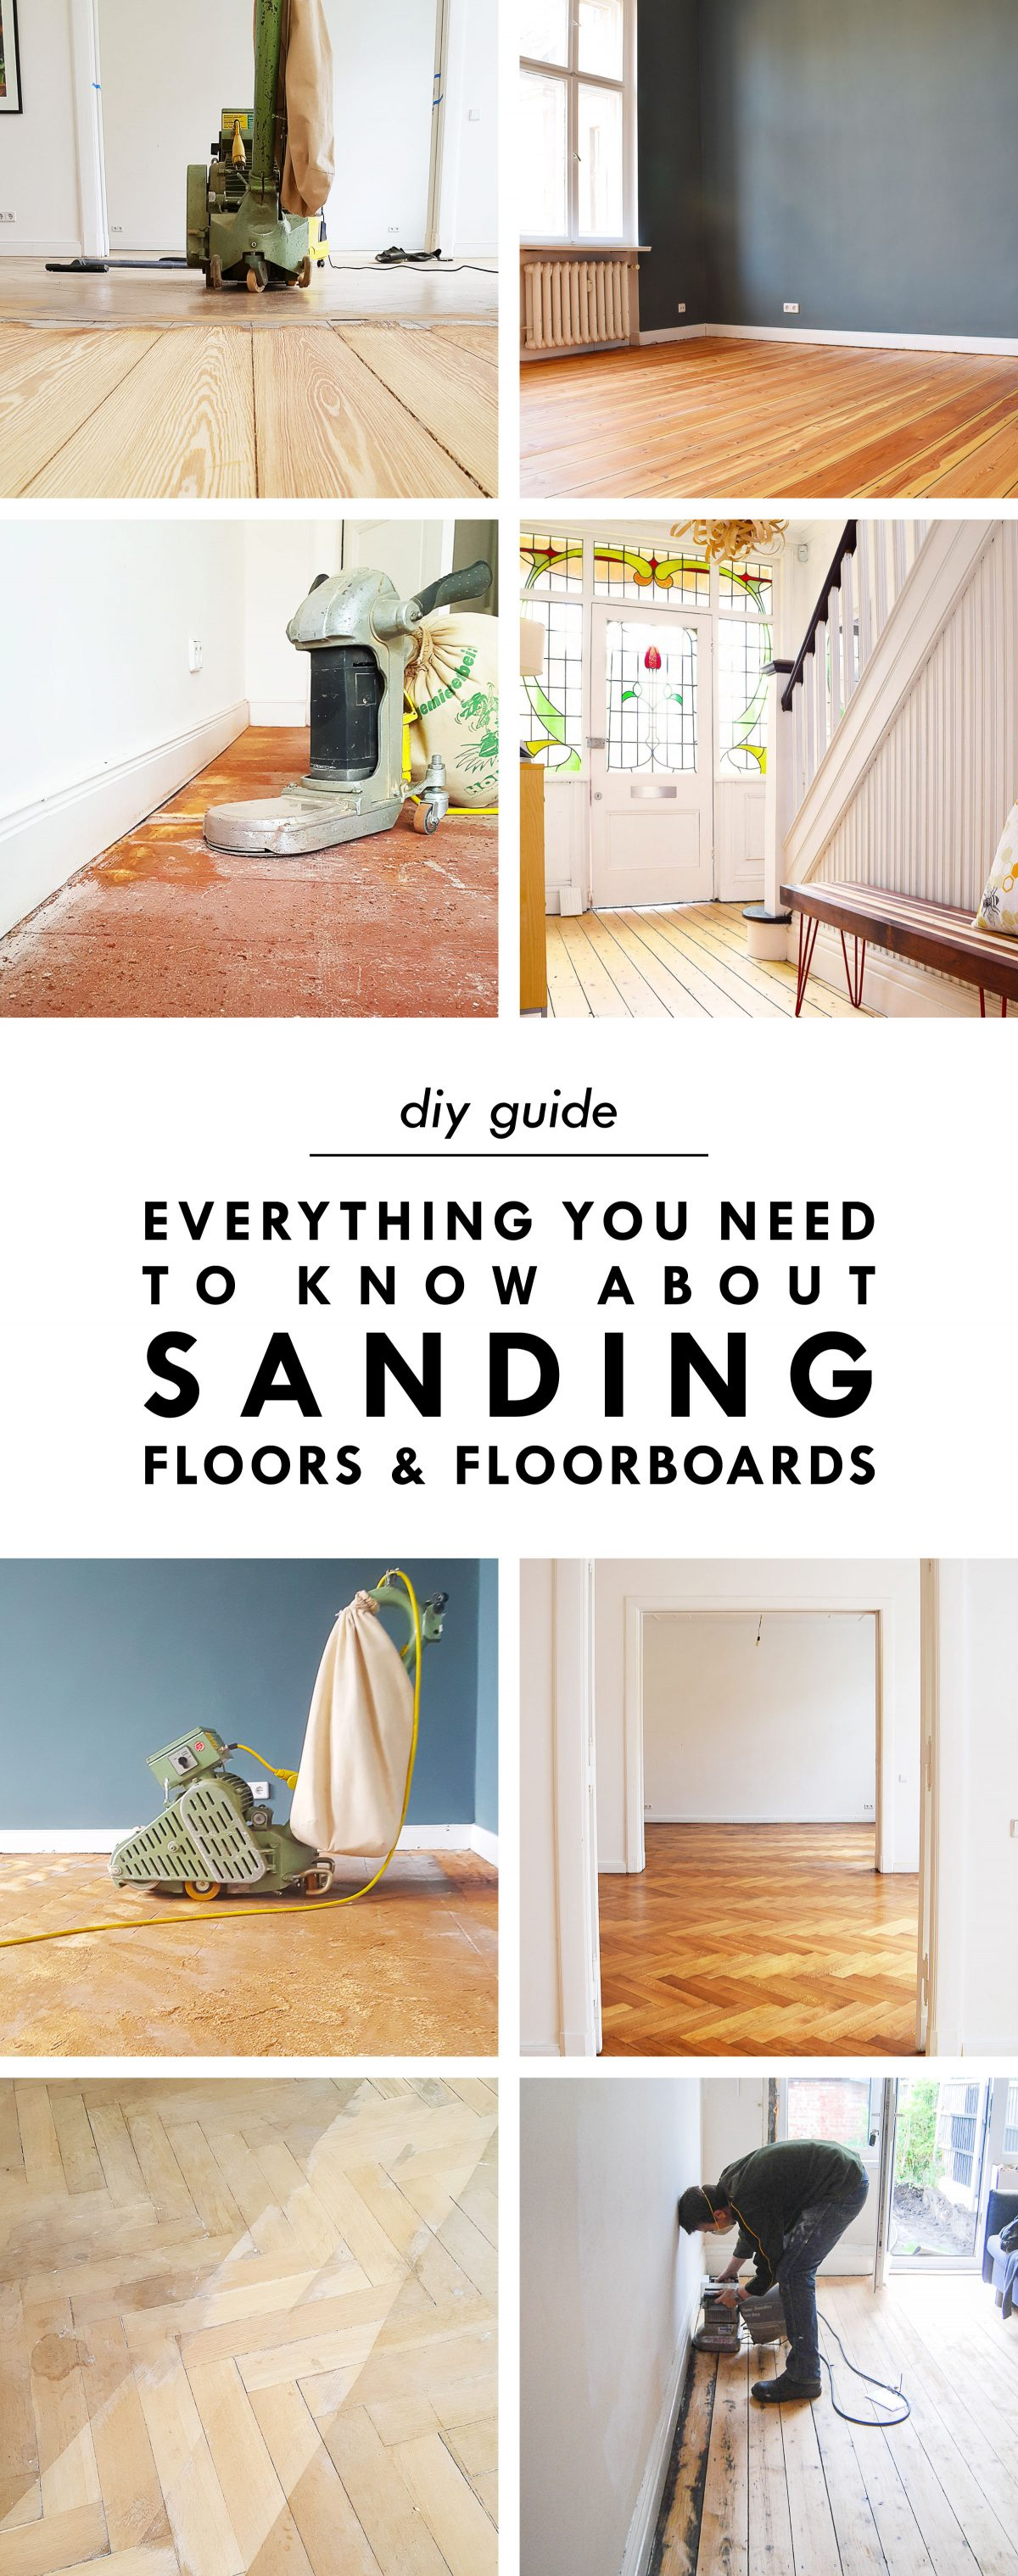 Everything You've Ever Wanted To Know About Sanding Wooden Floors And Floorboards | Little House On The Corner